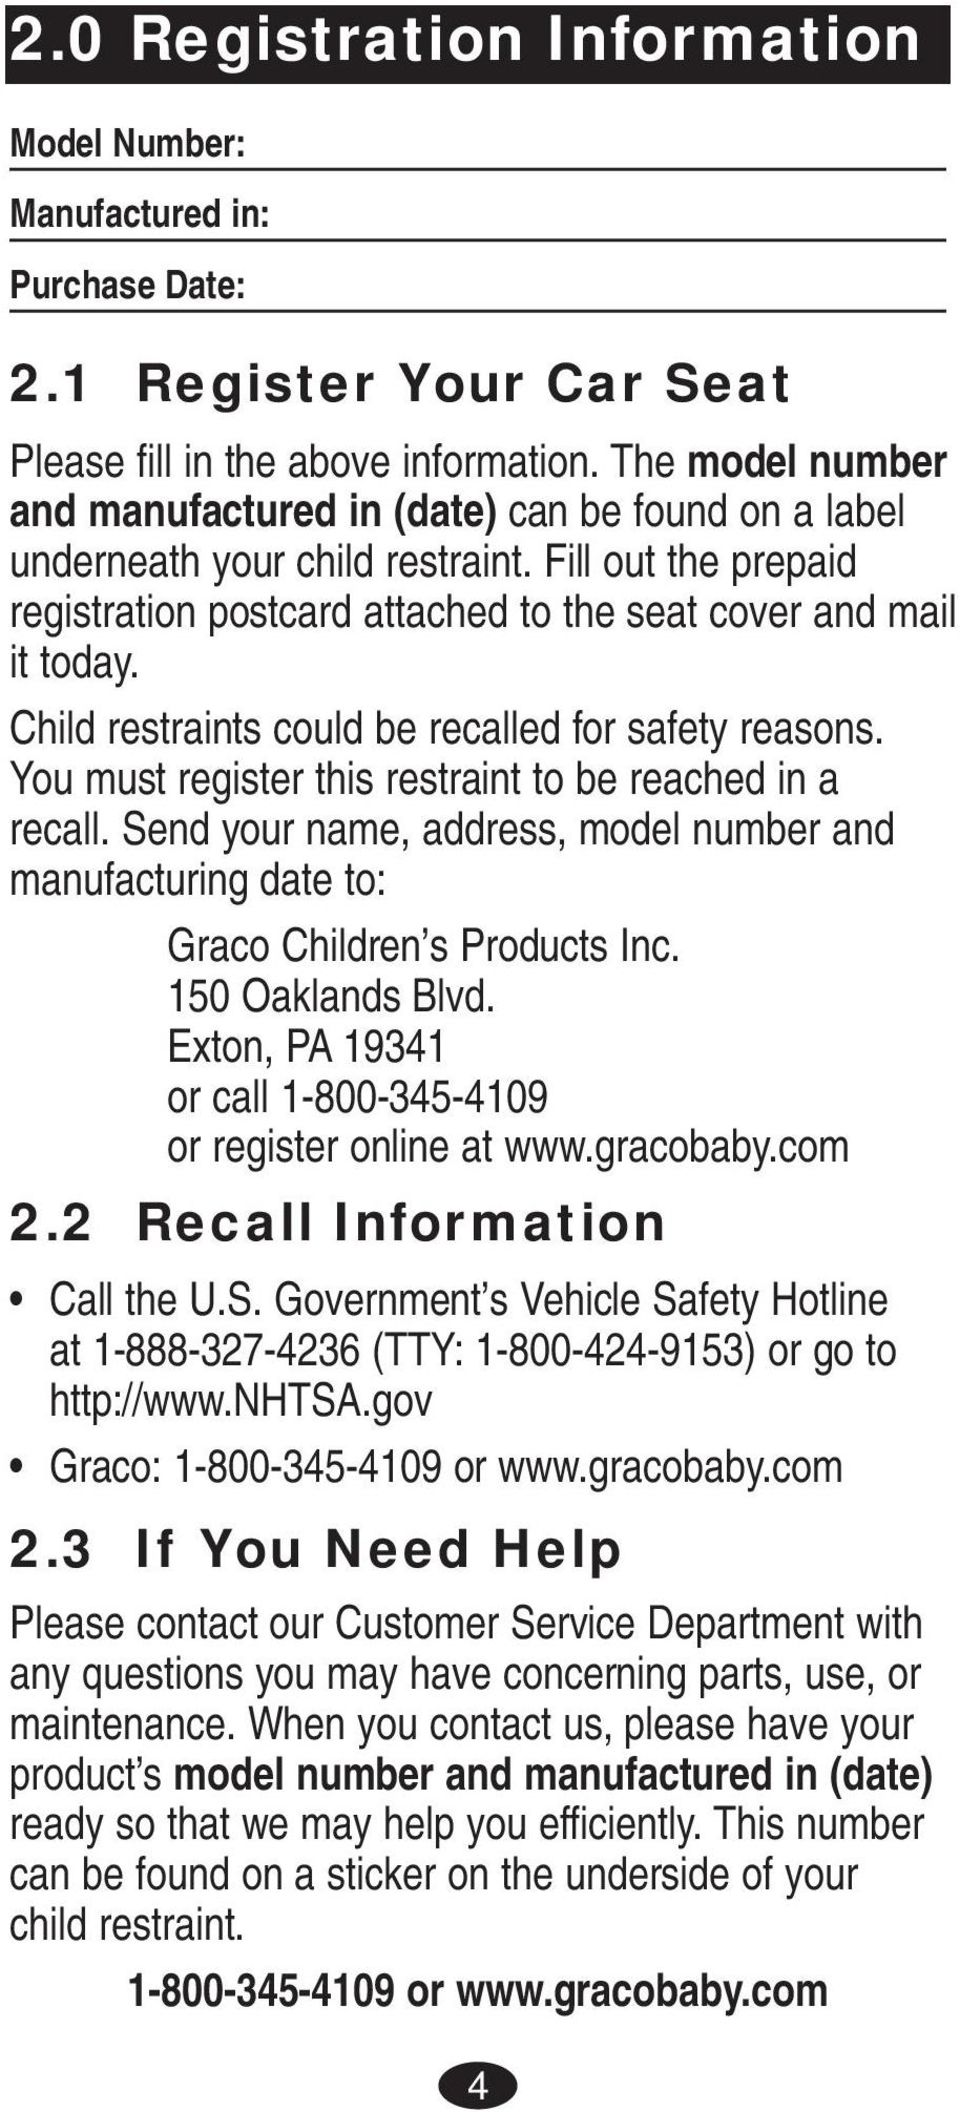 Child restraints could be recalled for safety reasons. You must register this restraint to be reached in a recall.